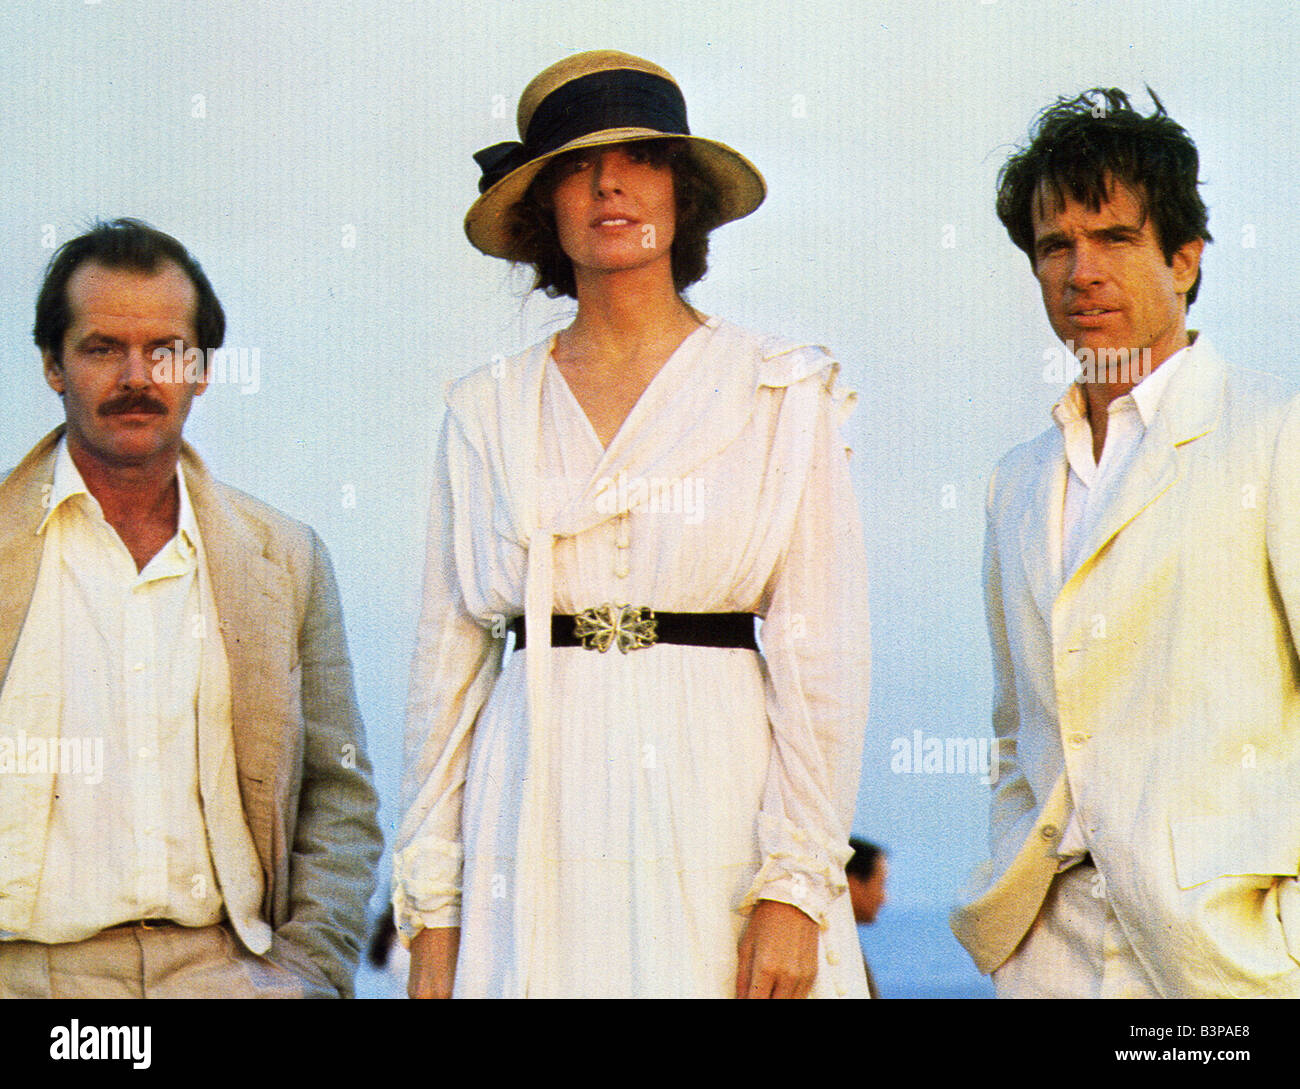 REDS  1981 Paramount film with from left Jack Nicholson, Diane Keaton and Warren Beatty - Stock Image